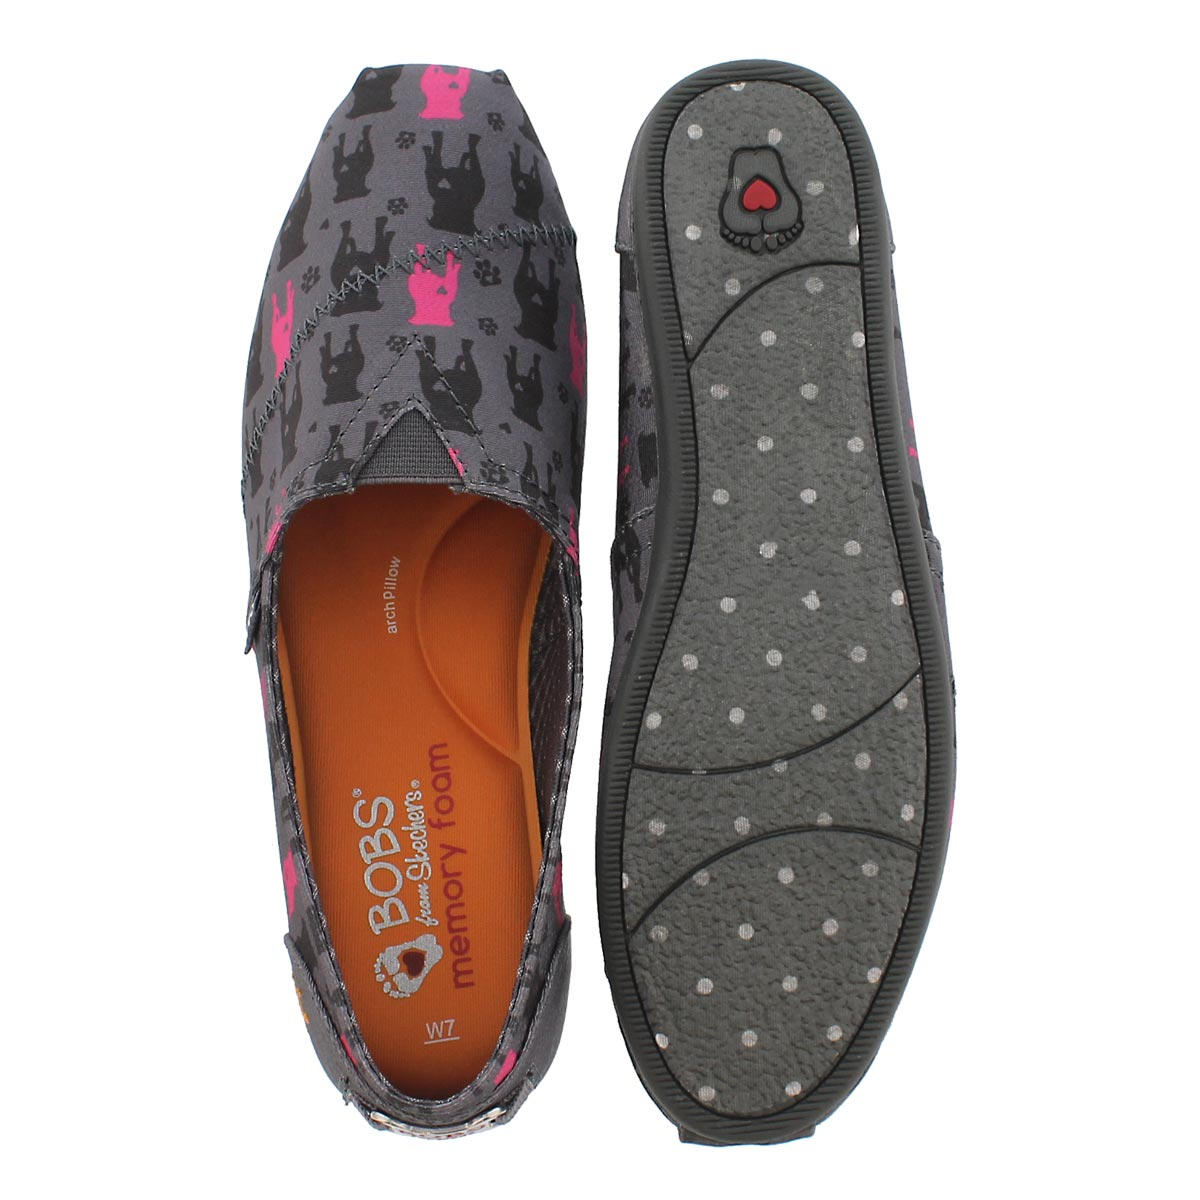 Lds Bobs Plush Gentle Giant gry slip on